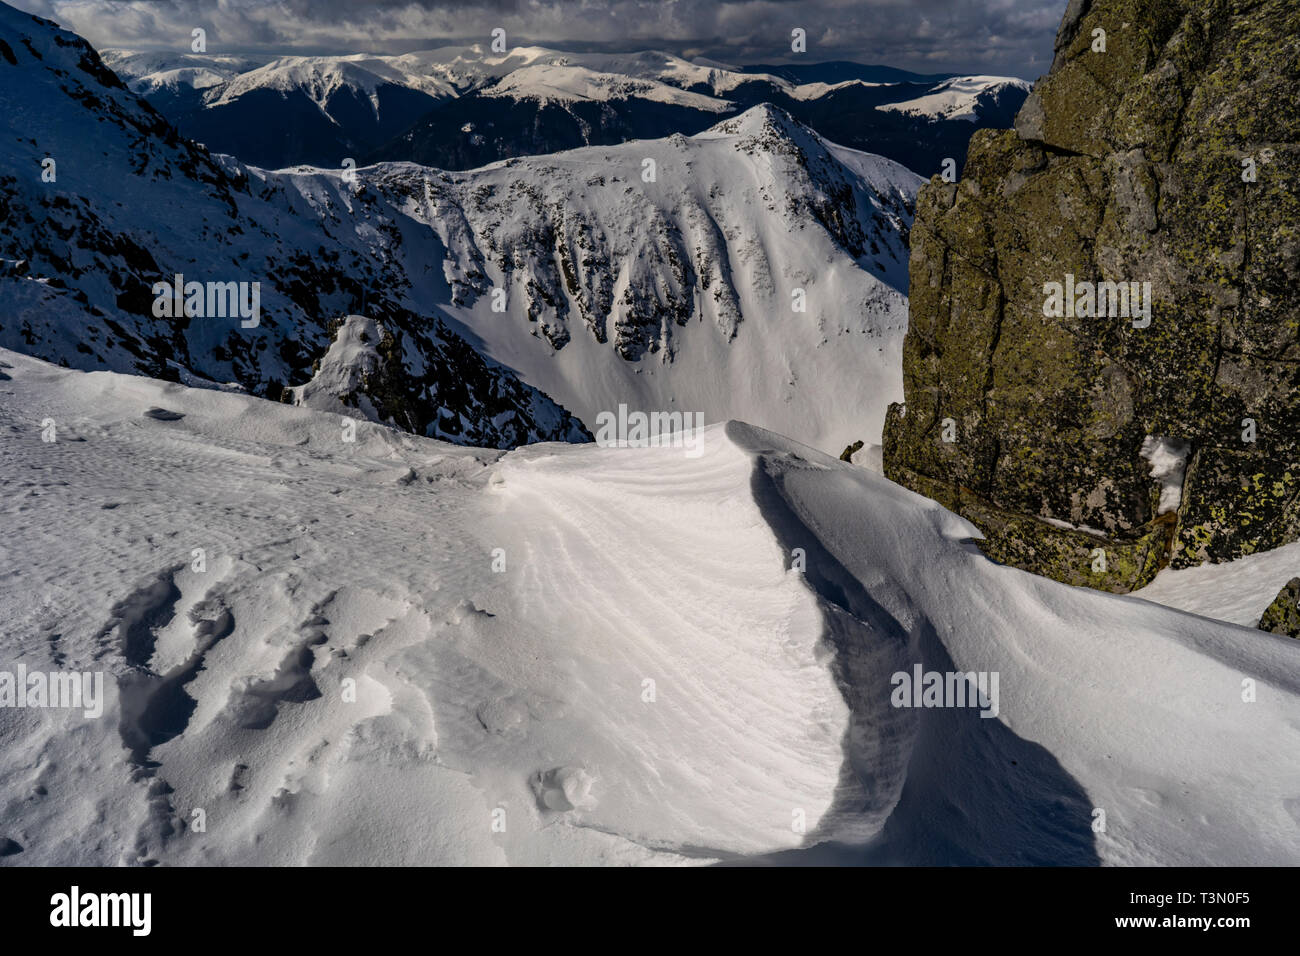 Group of mountaineers ascend and reach the top of one of the most spectacular peaks in Retezat National Park, Romania Stock Photo